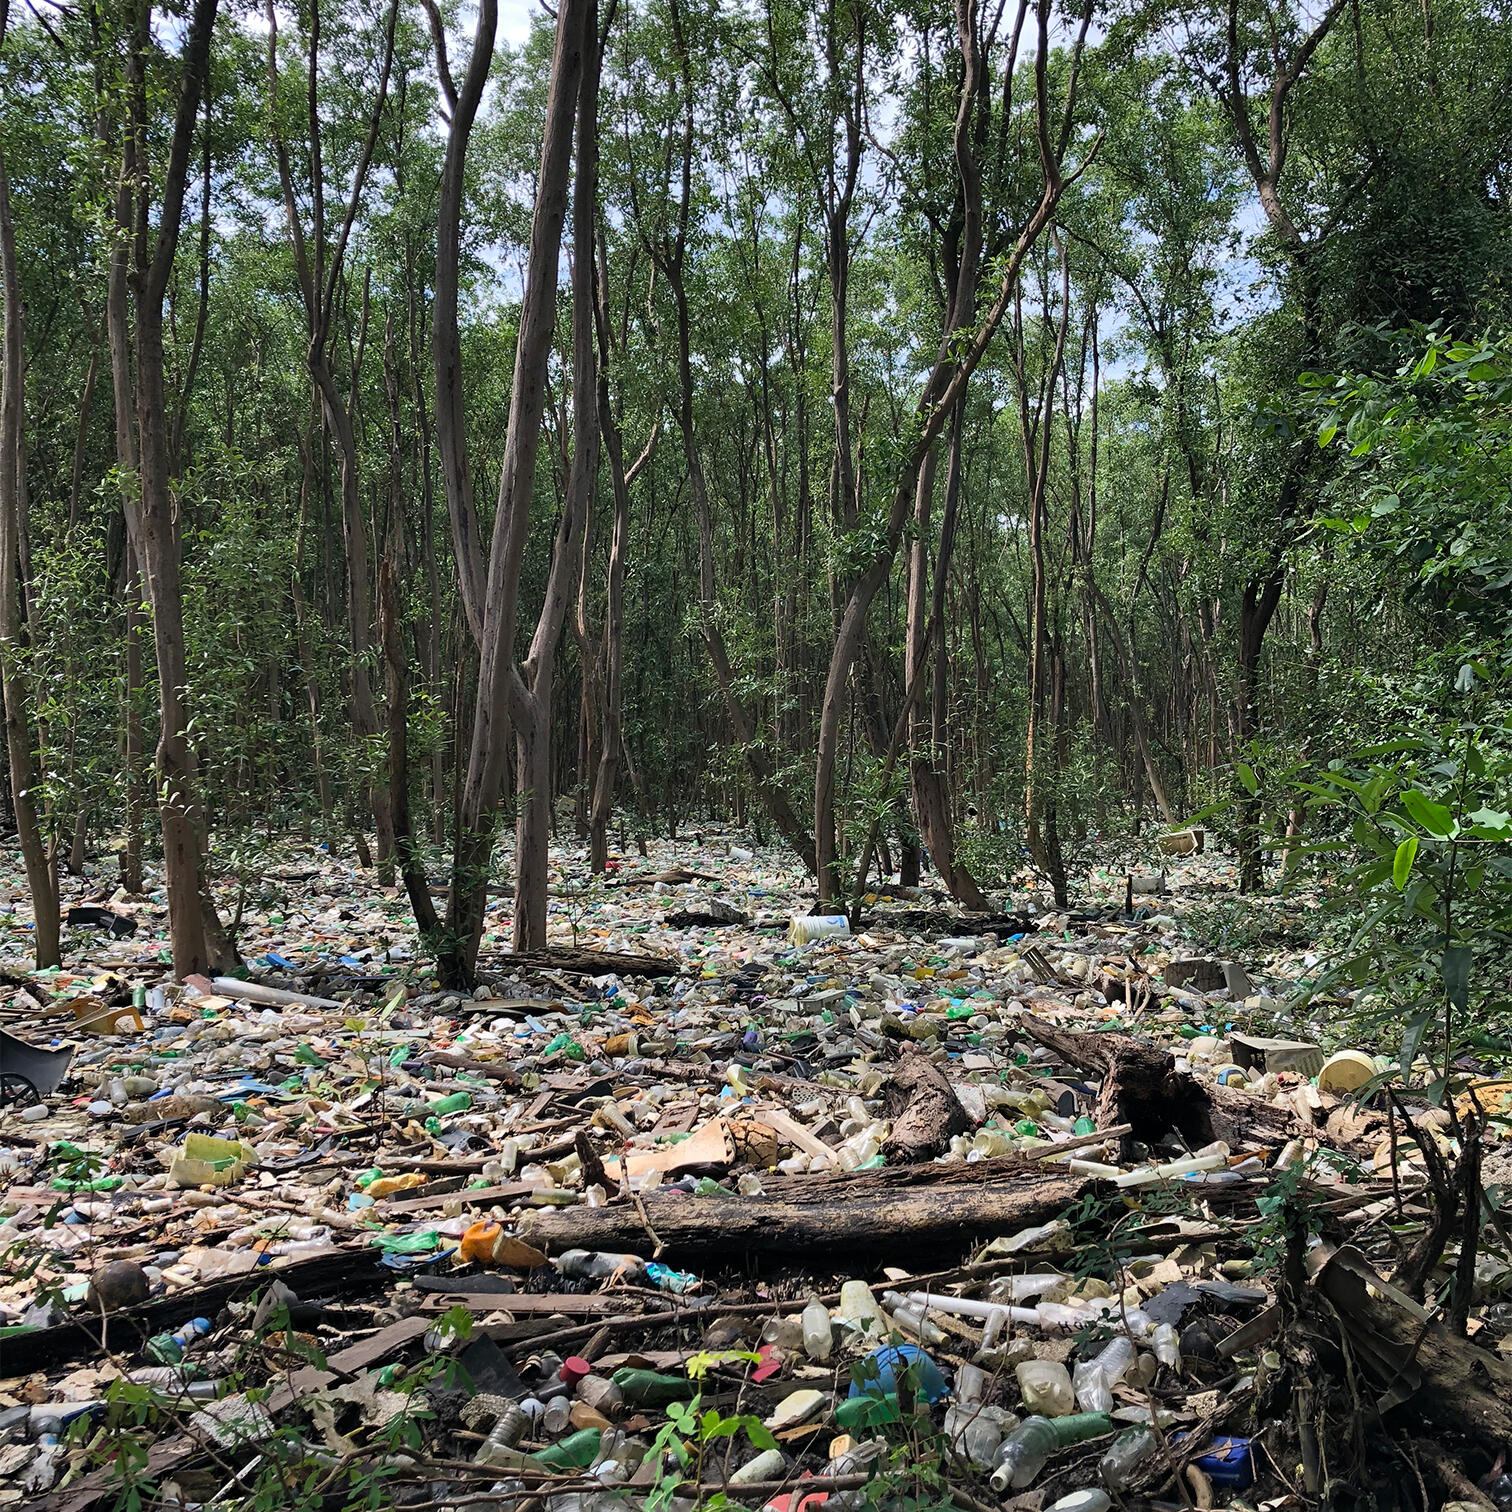 Photograph of plastic pollution in a mangrove ecosystem in the Bay of Panama. The negative impacts of plastic pollution are particularly evident in mangrove ecosystems throughout the Bay of Panama.